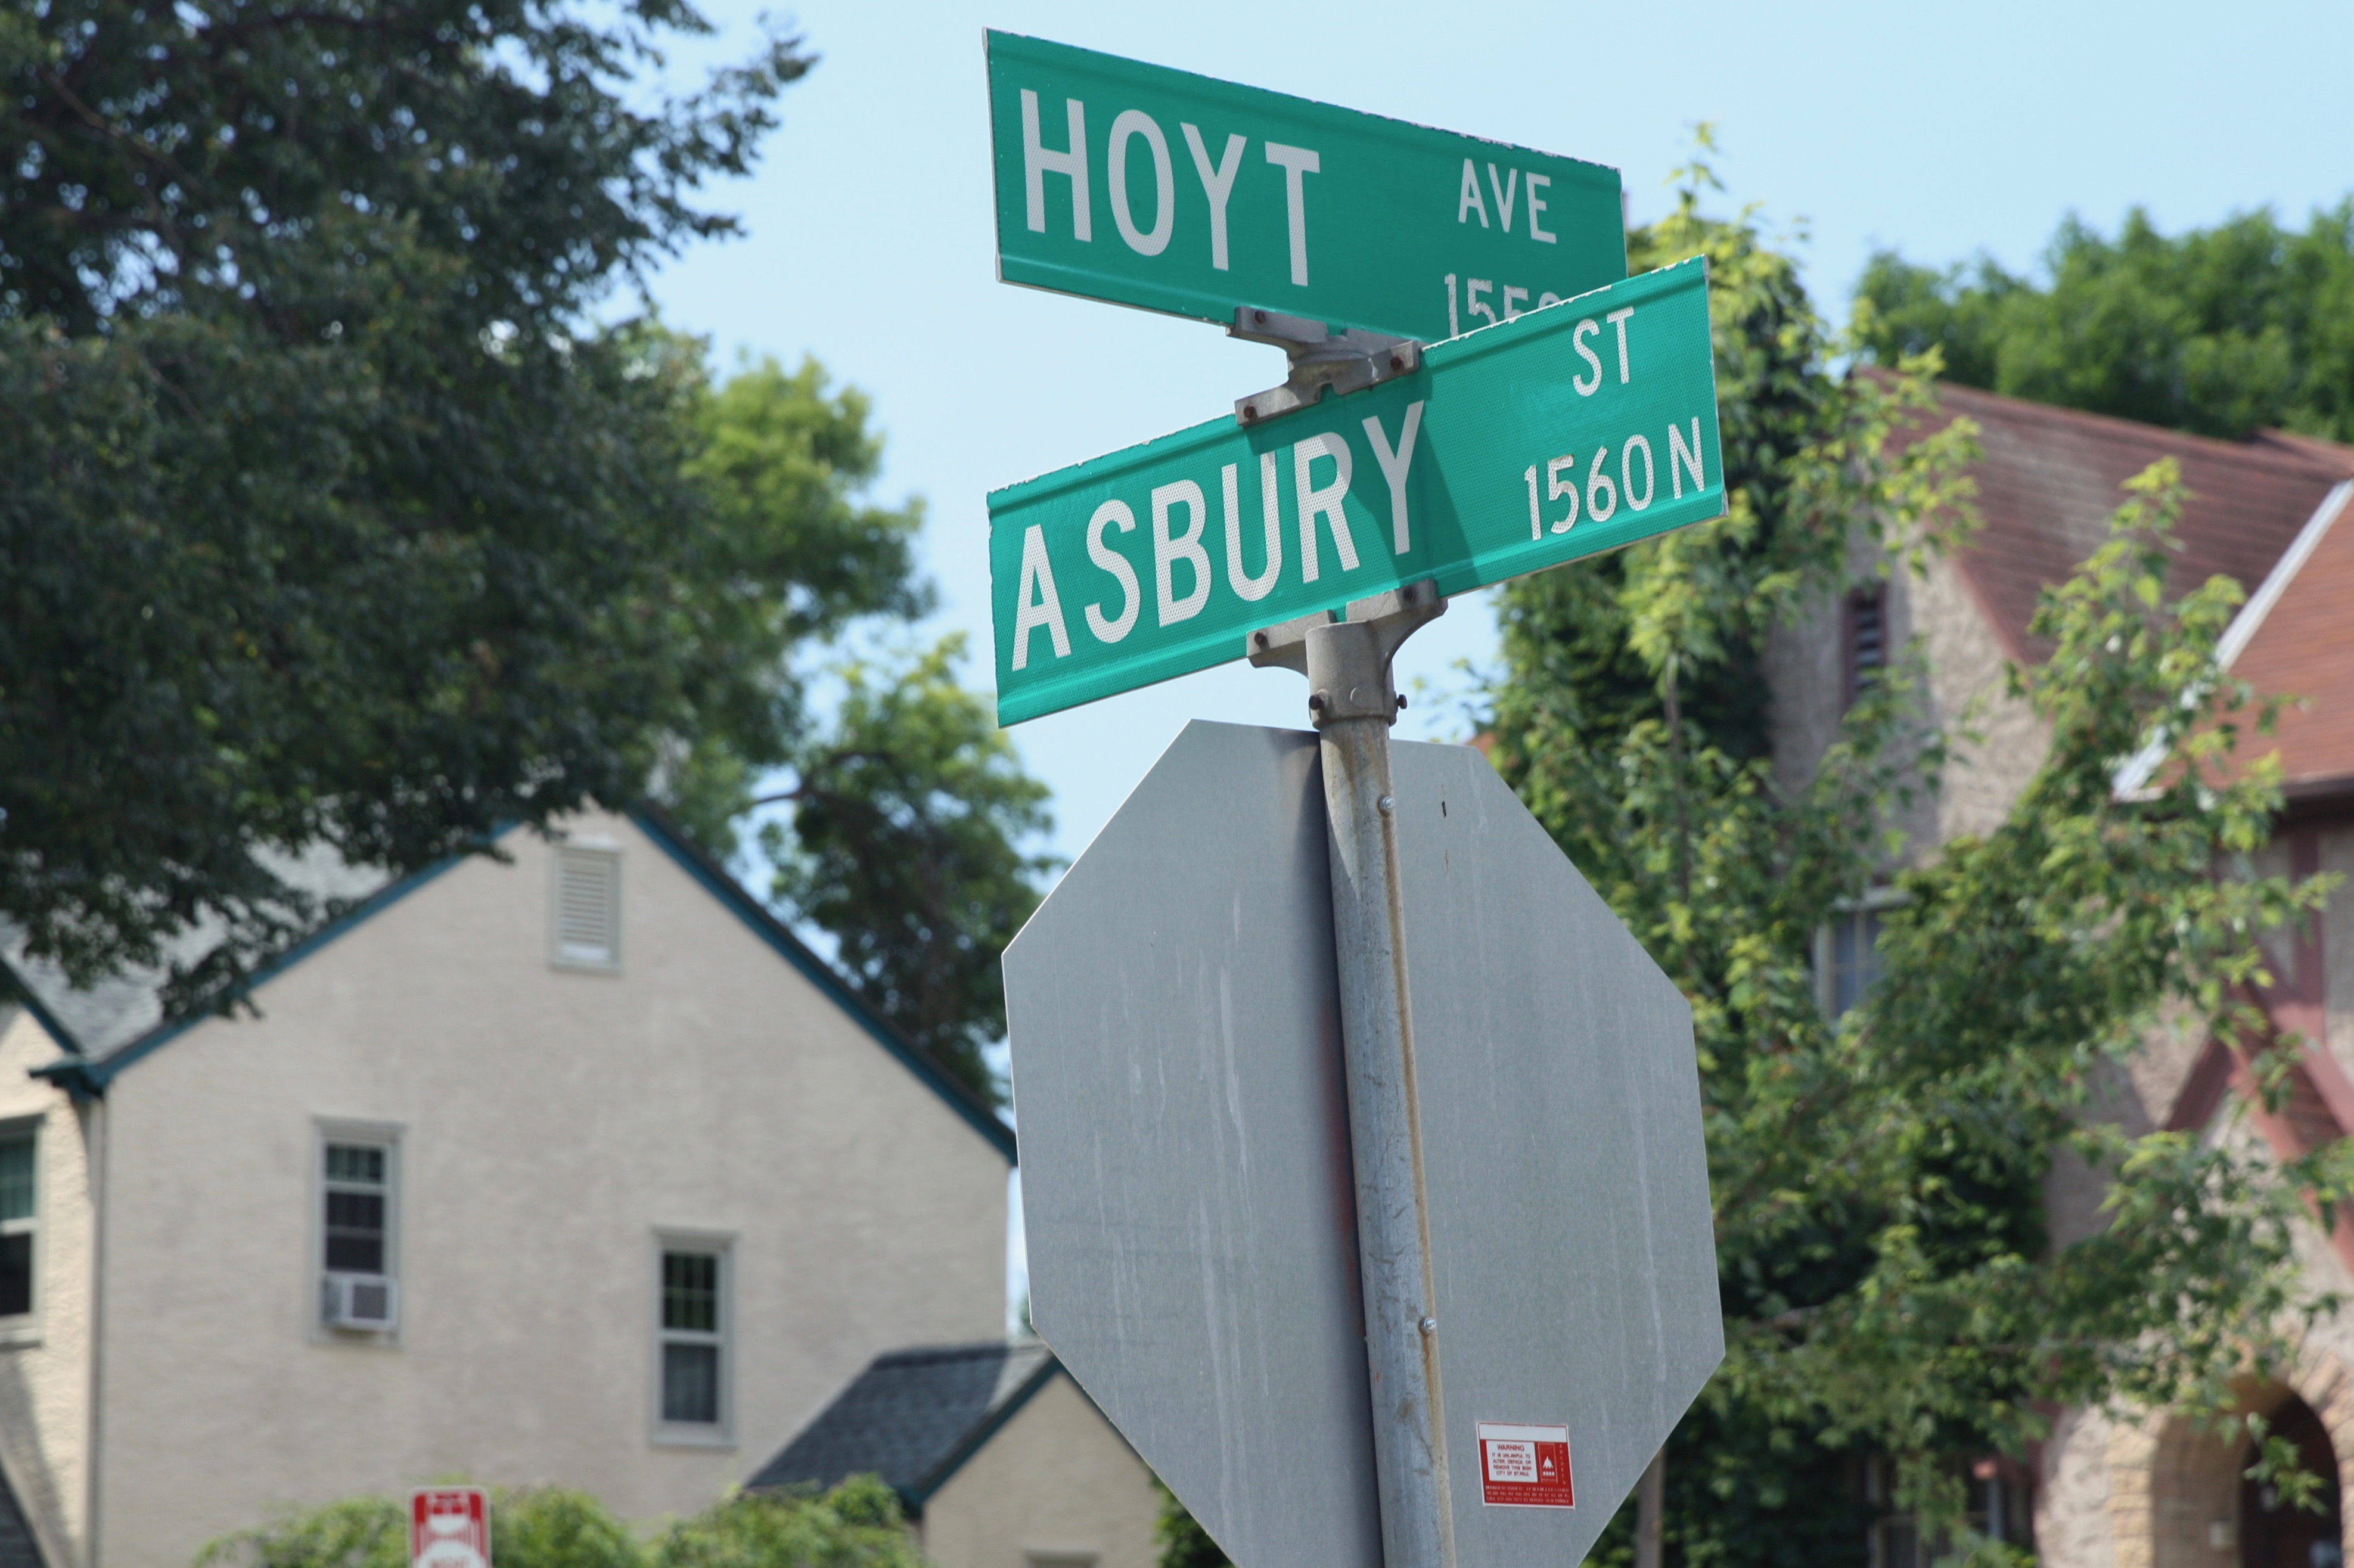 "Asbury Street was named in 1881 for Bishop Francis Asbury, one of the first two bishops of the Methodist Episcopal Church in the United States. So says Don Empson in ""The Street Where You Live."" Empson adds that the bishop's name was attached to the street due to its proximity to Hamline University, which got support from the Methodist Episcopal Church."